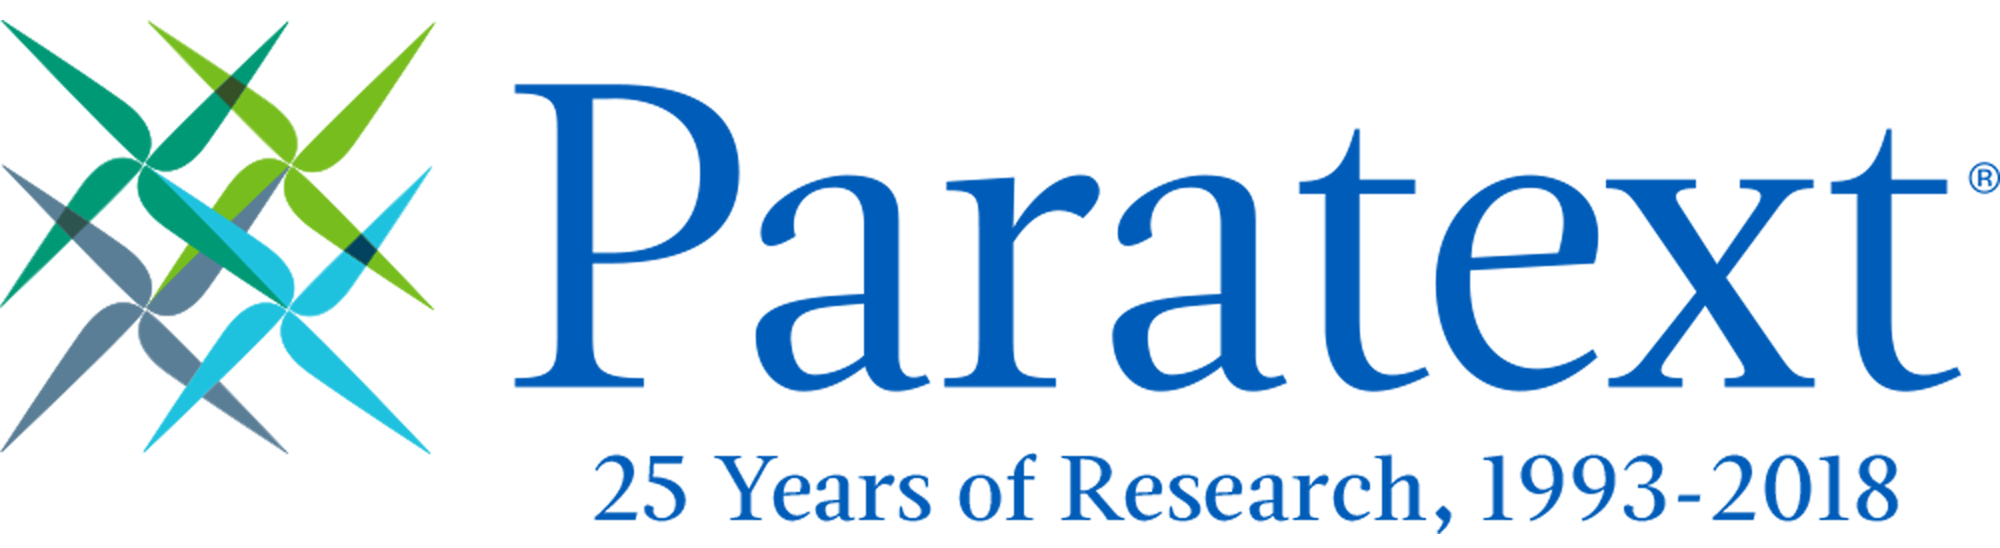 Paratext Celebrates 25 Years of Research, 1993-2018